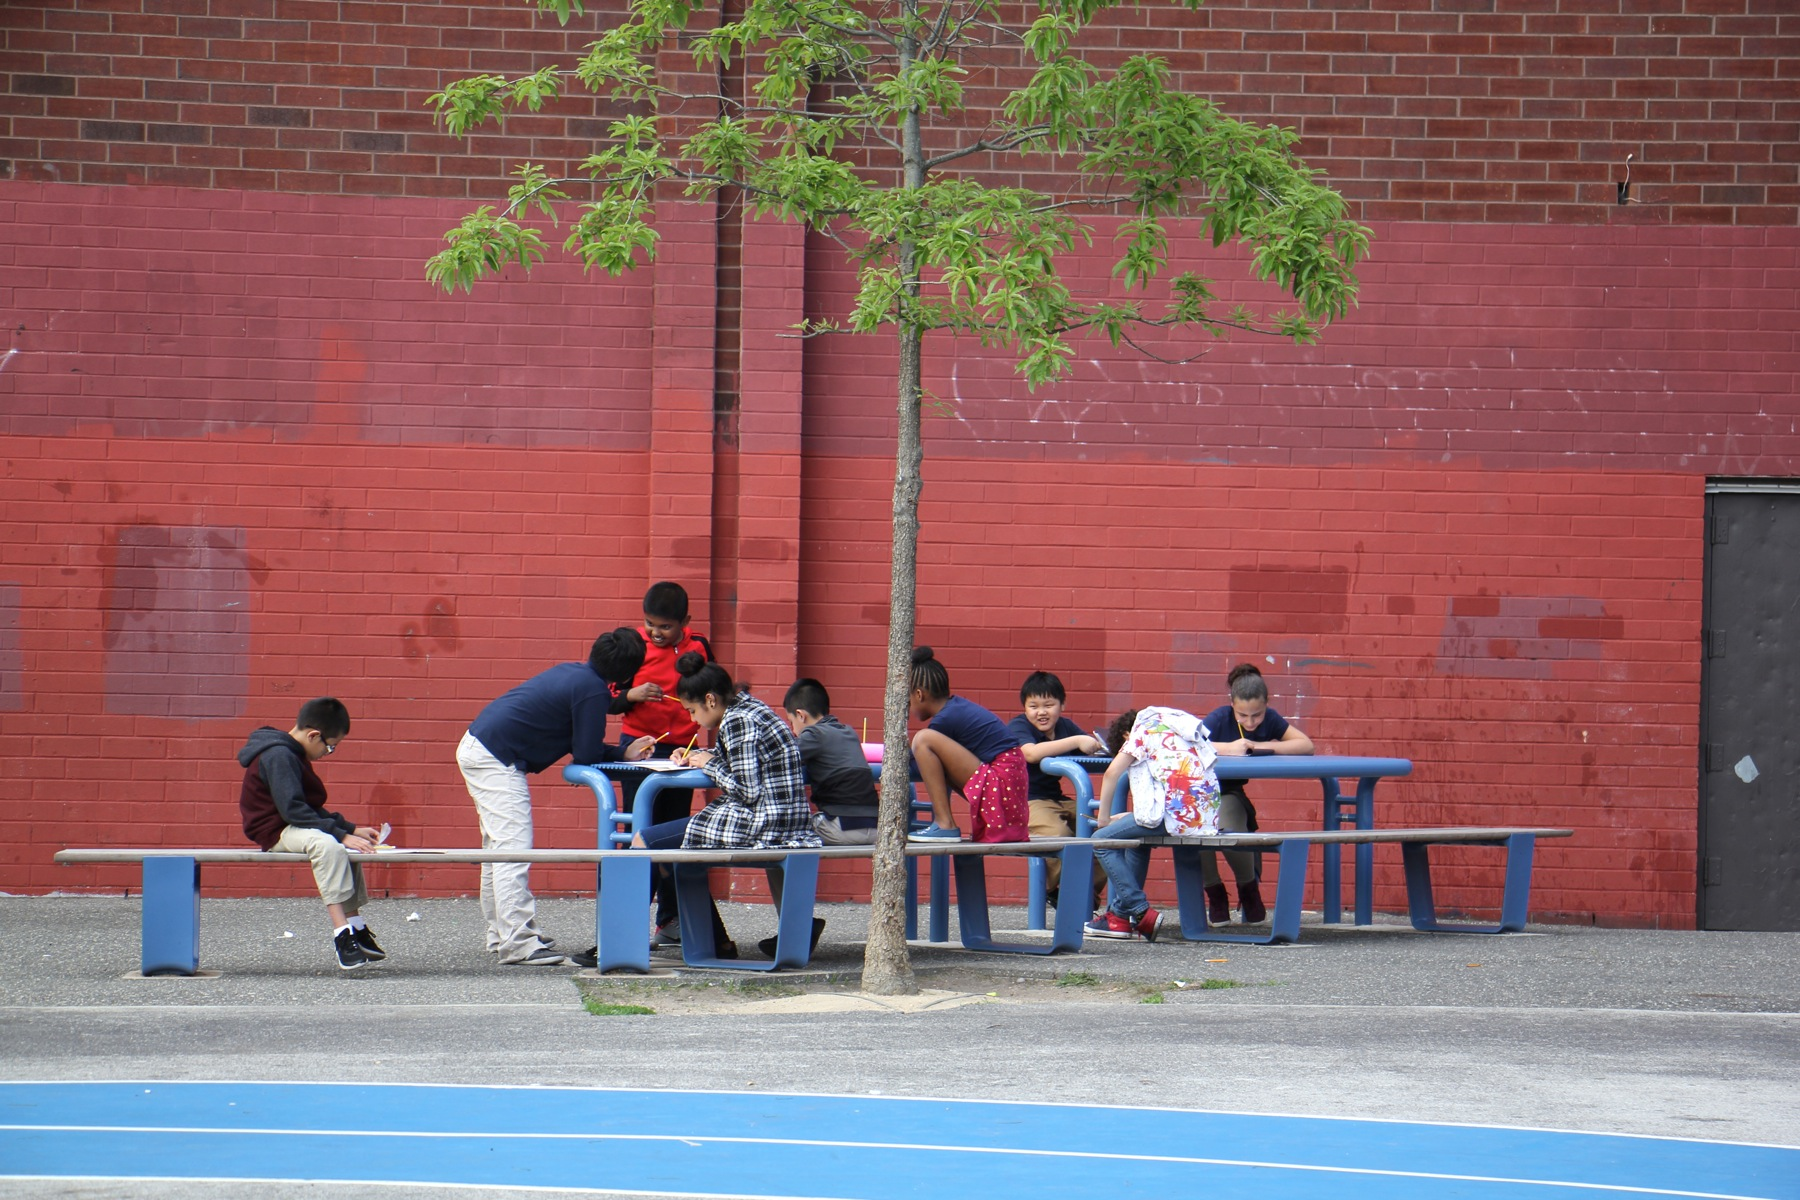 Trees shade outdoor learning spaces at Taggart School. (Emma Lee/WHYY)